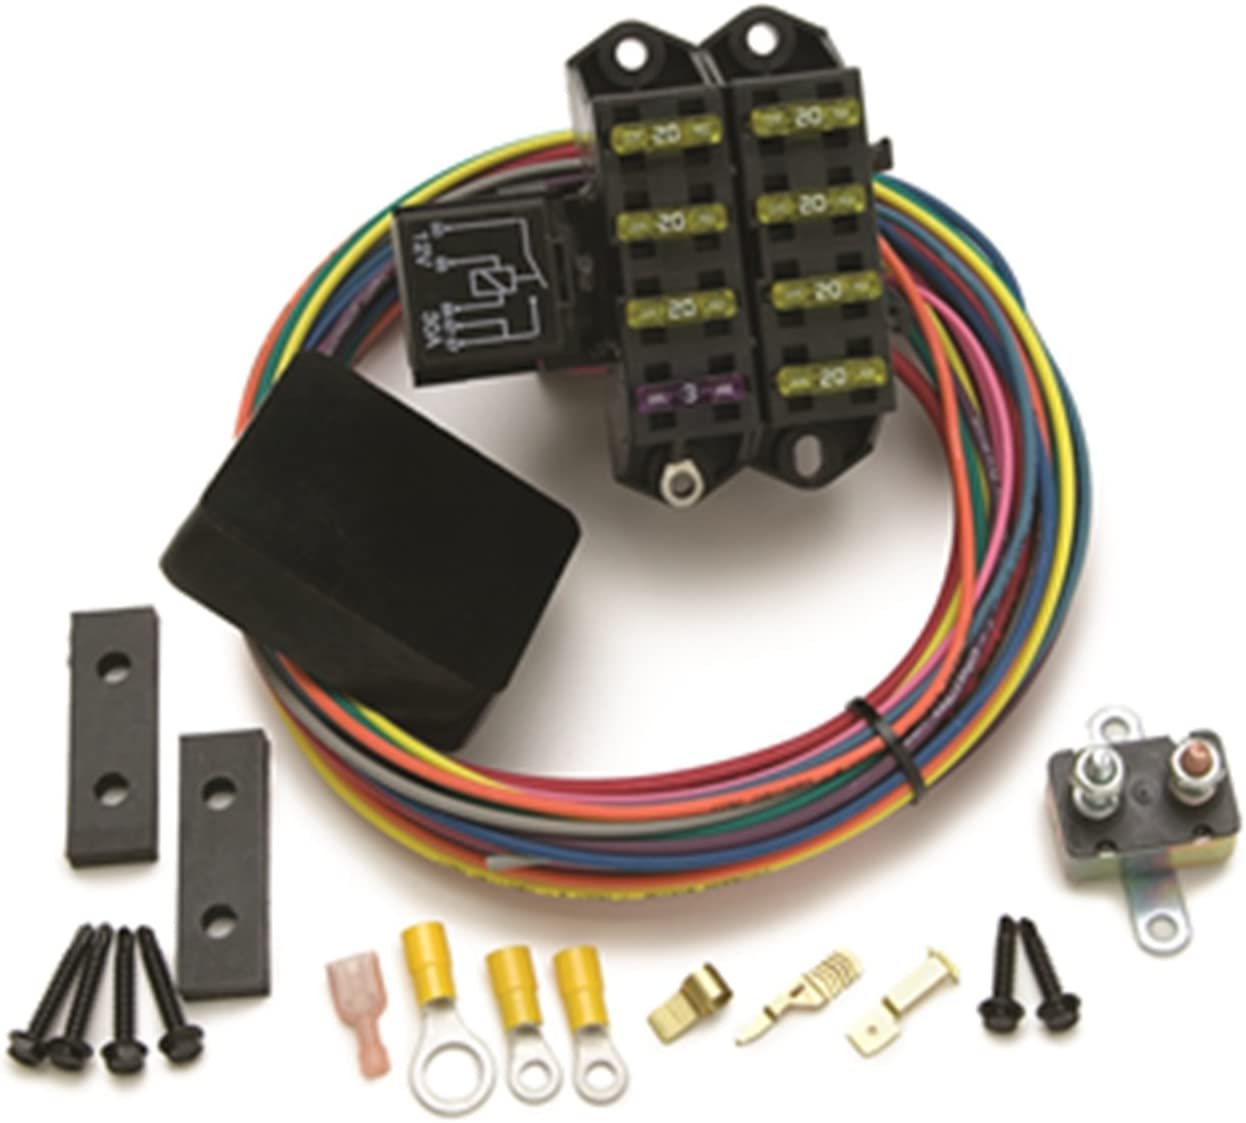 painless ls fuse box wire | wiring schematic |  sockets-response.pesarocoupon.it  wiring schematic